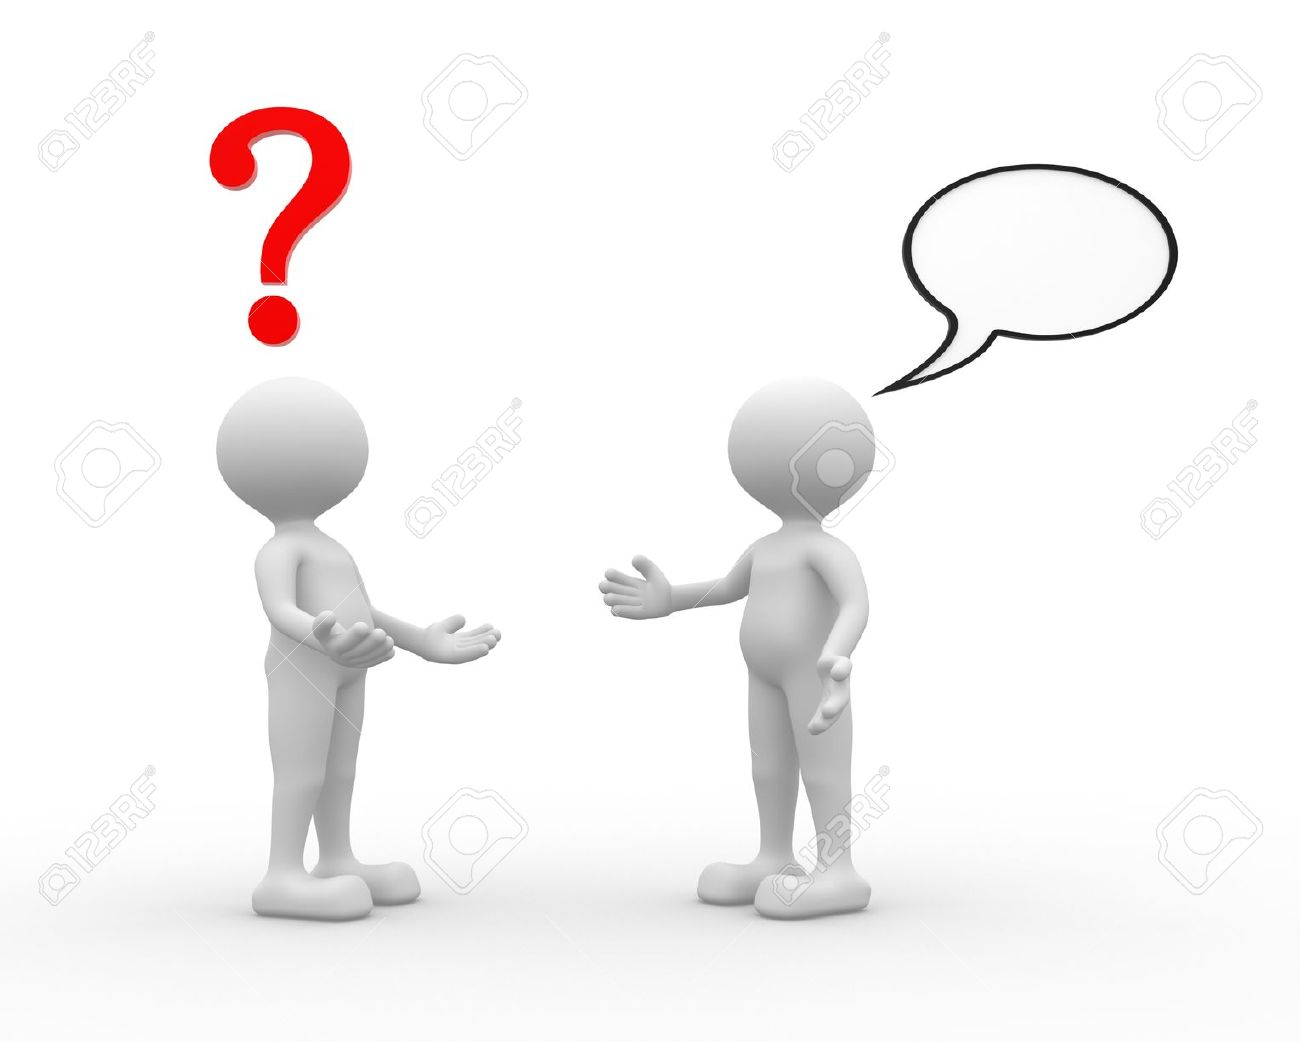 20847907-3d-people-man-person-talking-arguing-Question-mark-and--Stock-Photo.jpg